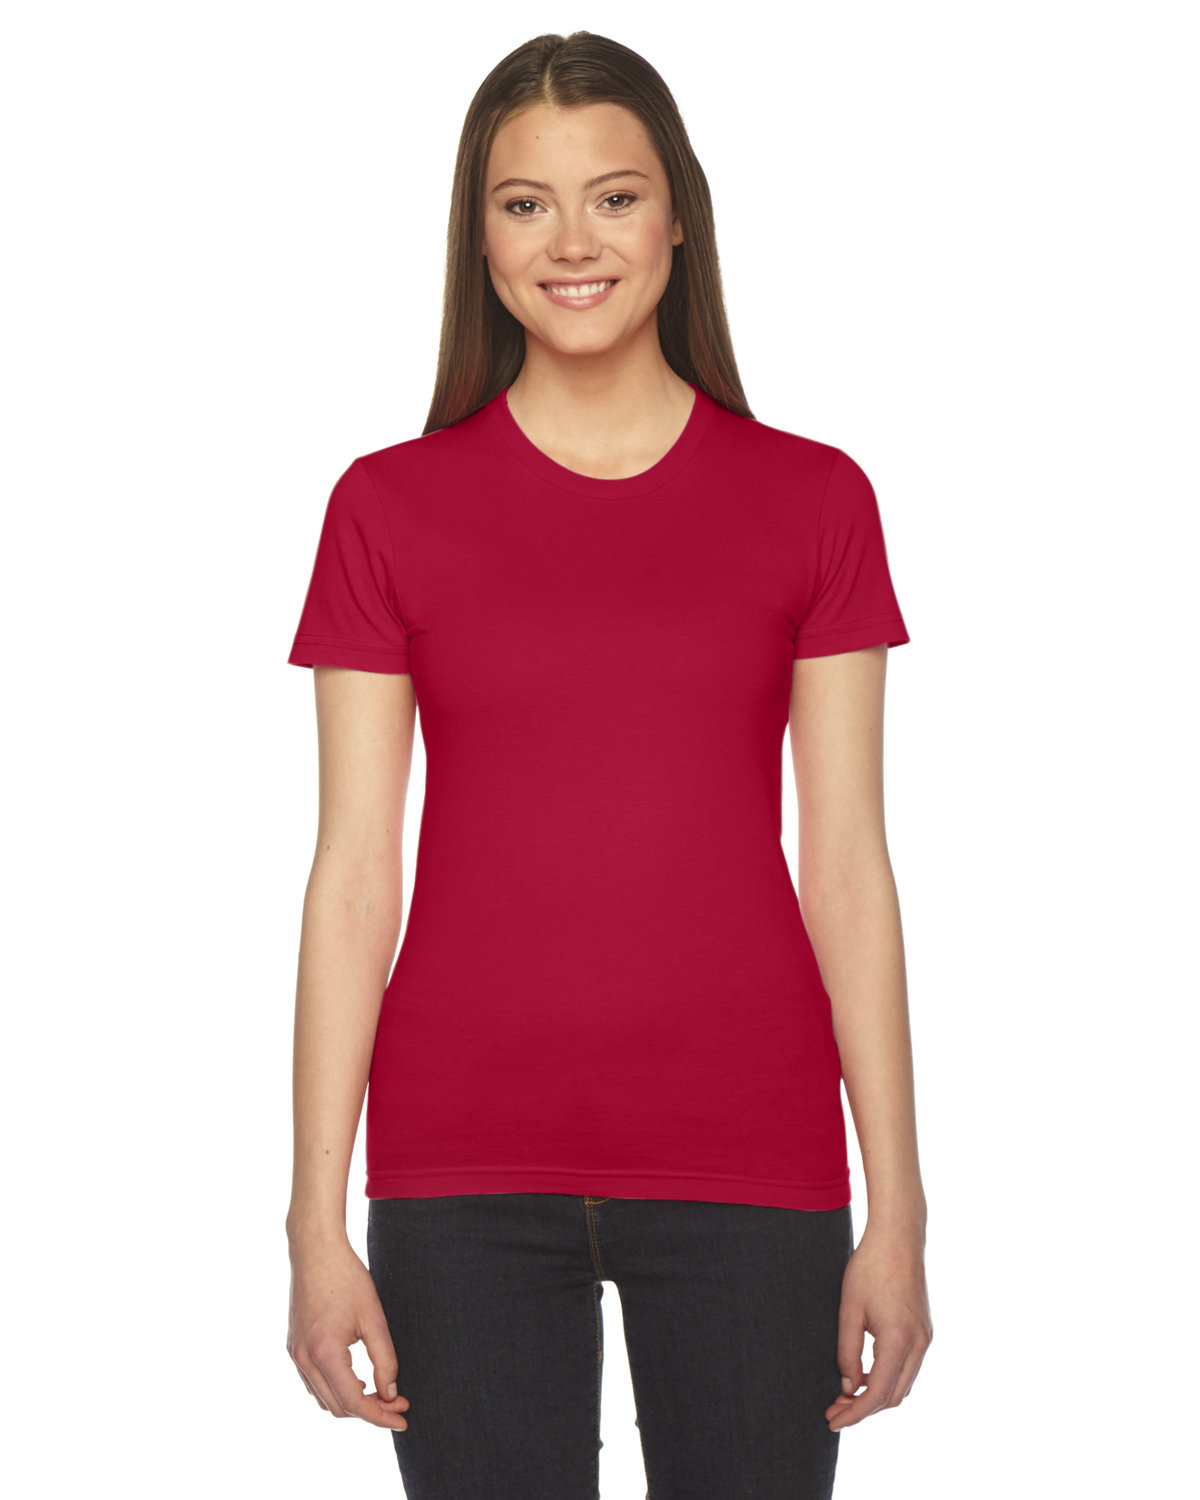 American Apparel Ladies' Fine Jersey Short-Sleeve T-Shirt RED